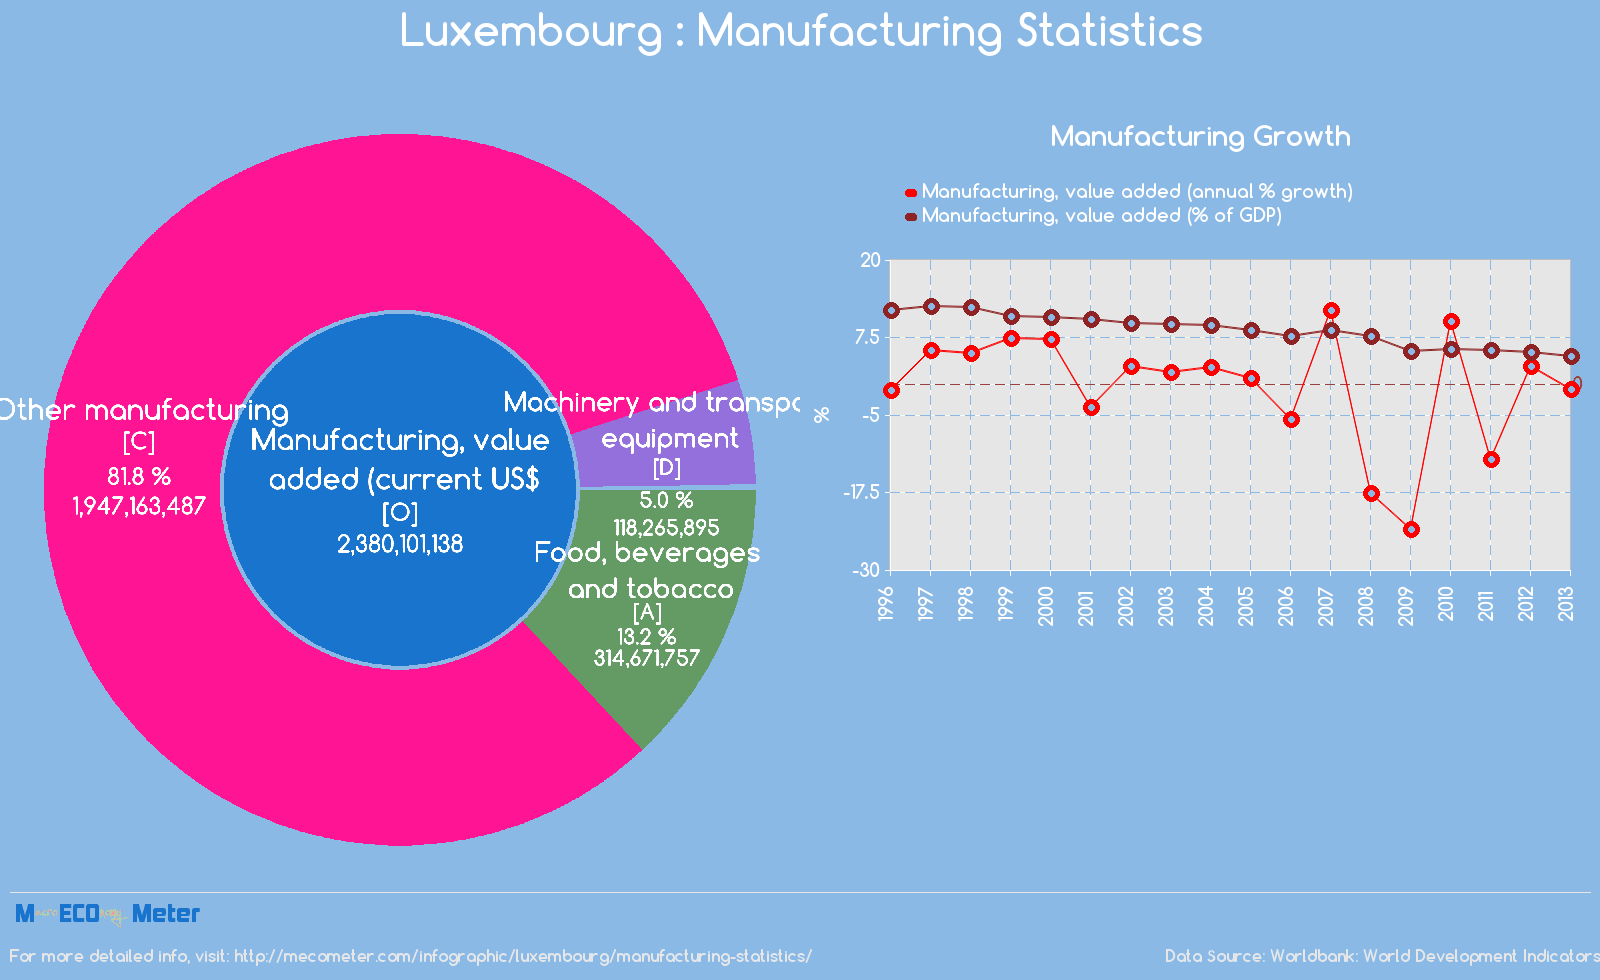 Luxembourg : Manufacturing Statistics